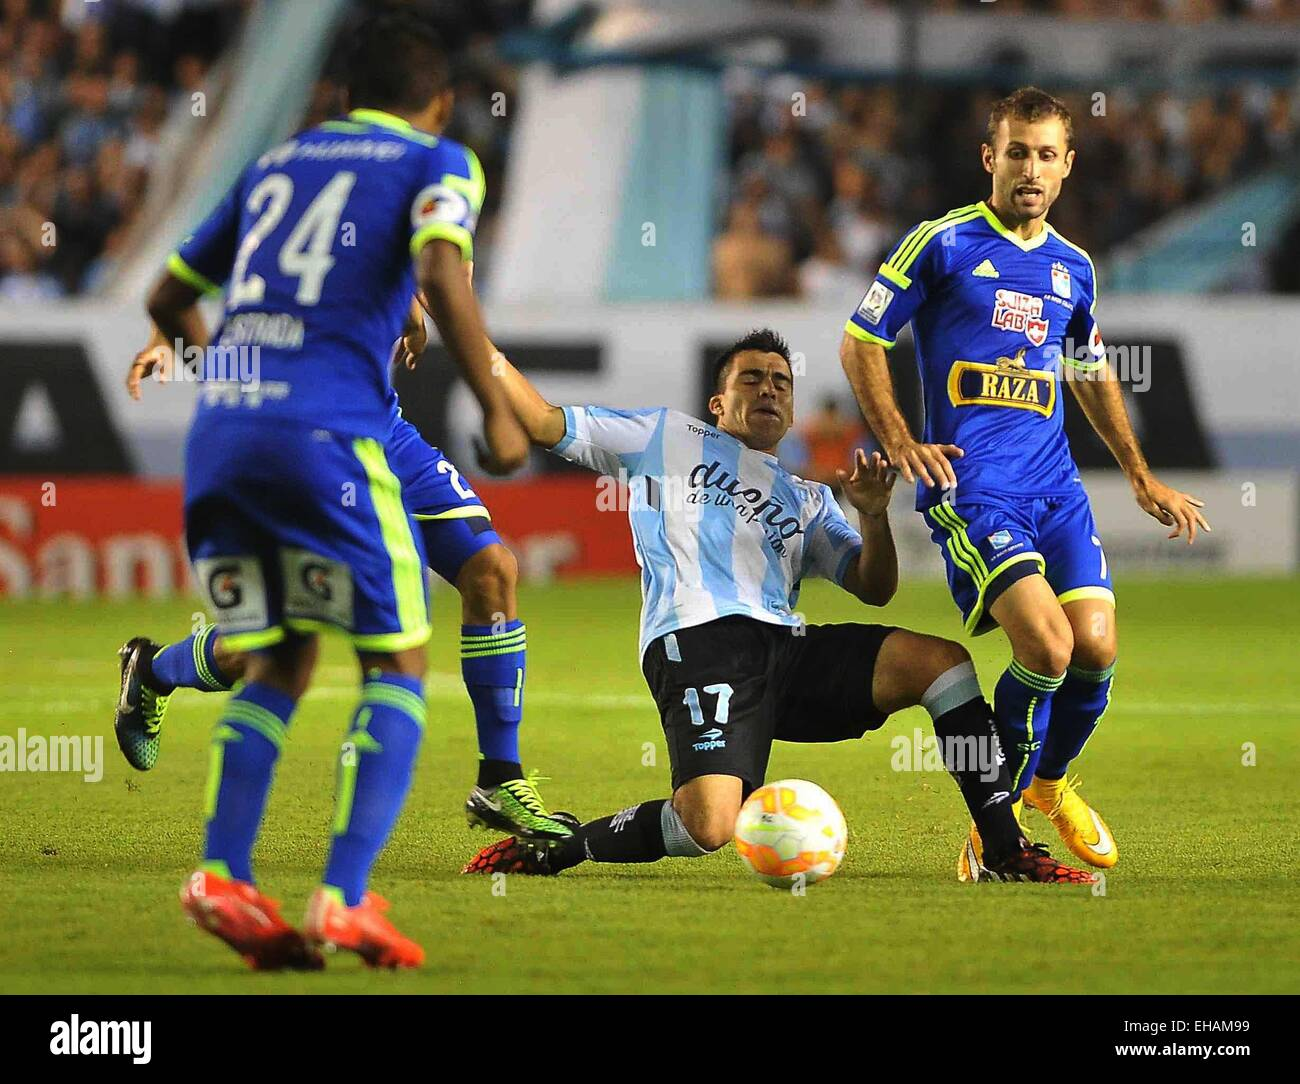 Buenos Aires, Argentina. 10th Mar, 2015. Racing Club's Marcos Acuna (C) of Argentina vies for the ball with - Stock Image